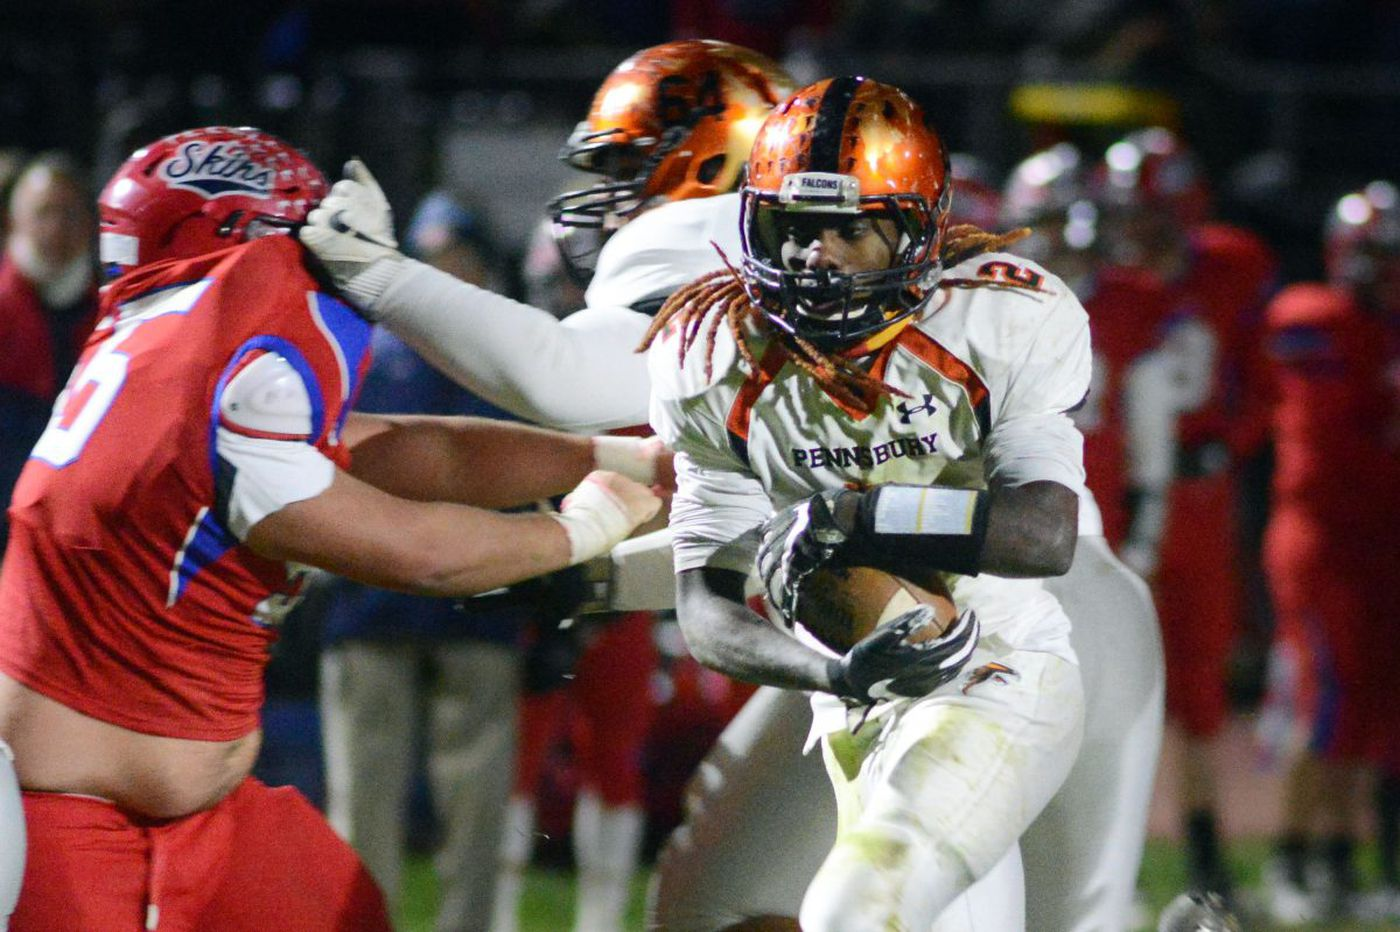 PIAA District 1 playoff primer: Pennsbury's defense will be tested by Coatesville's quick-strike offense